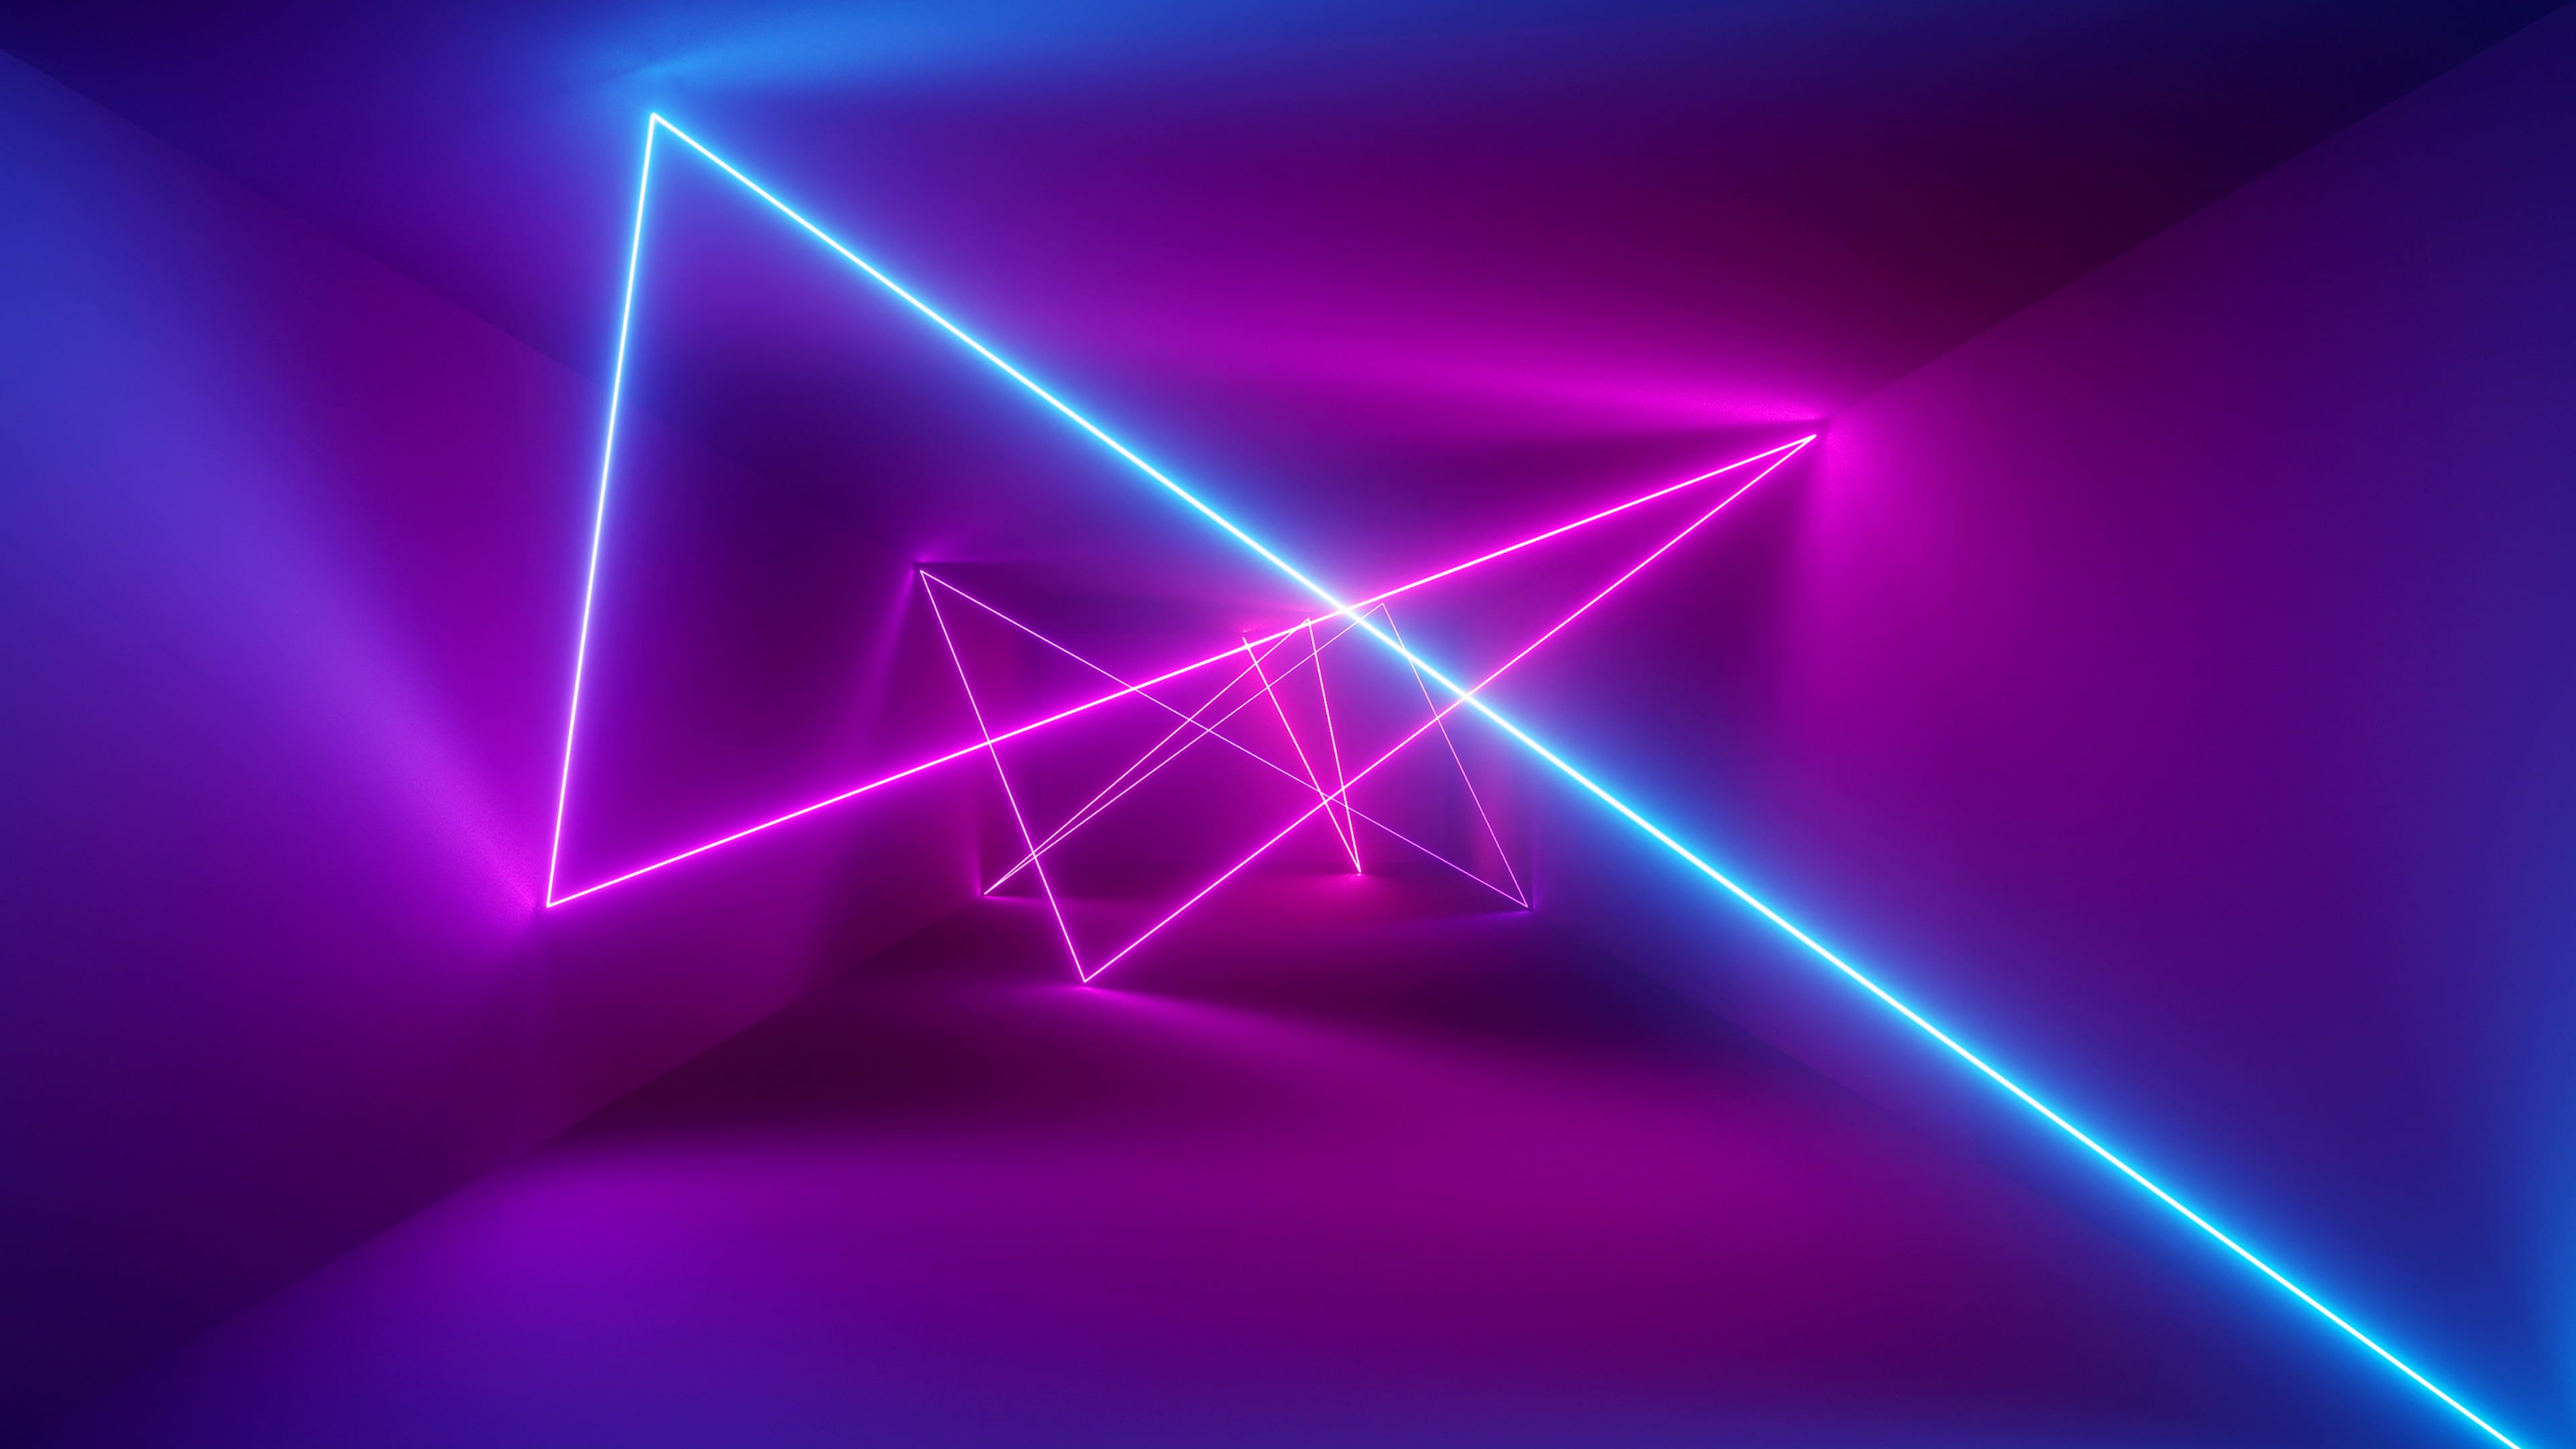 Abstract Neon Lights 4k Wallpaper Hdwallpaper Desktop In 2020 Neon Wallpaper Desktop Wallpaper Neon